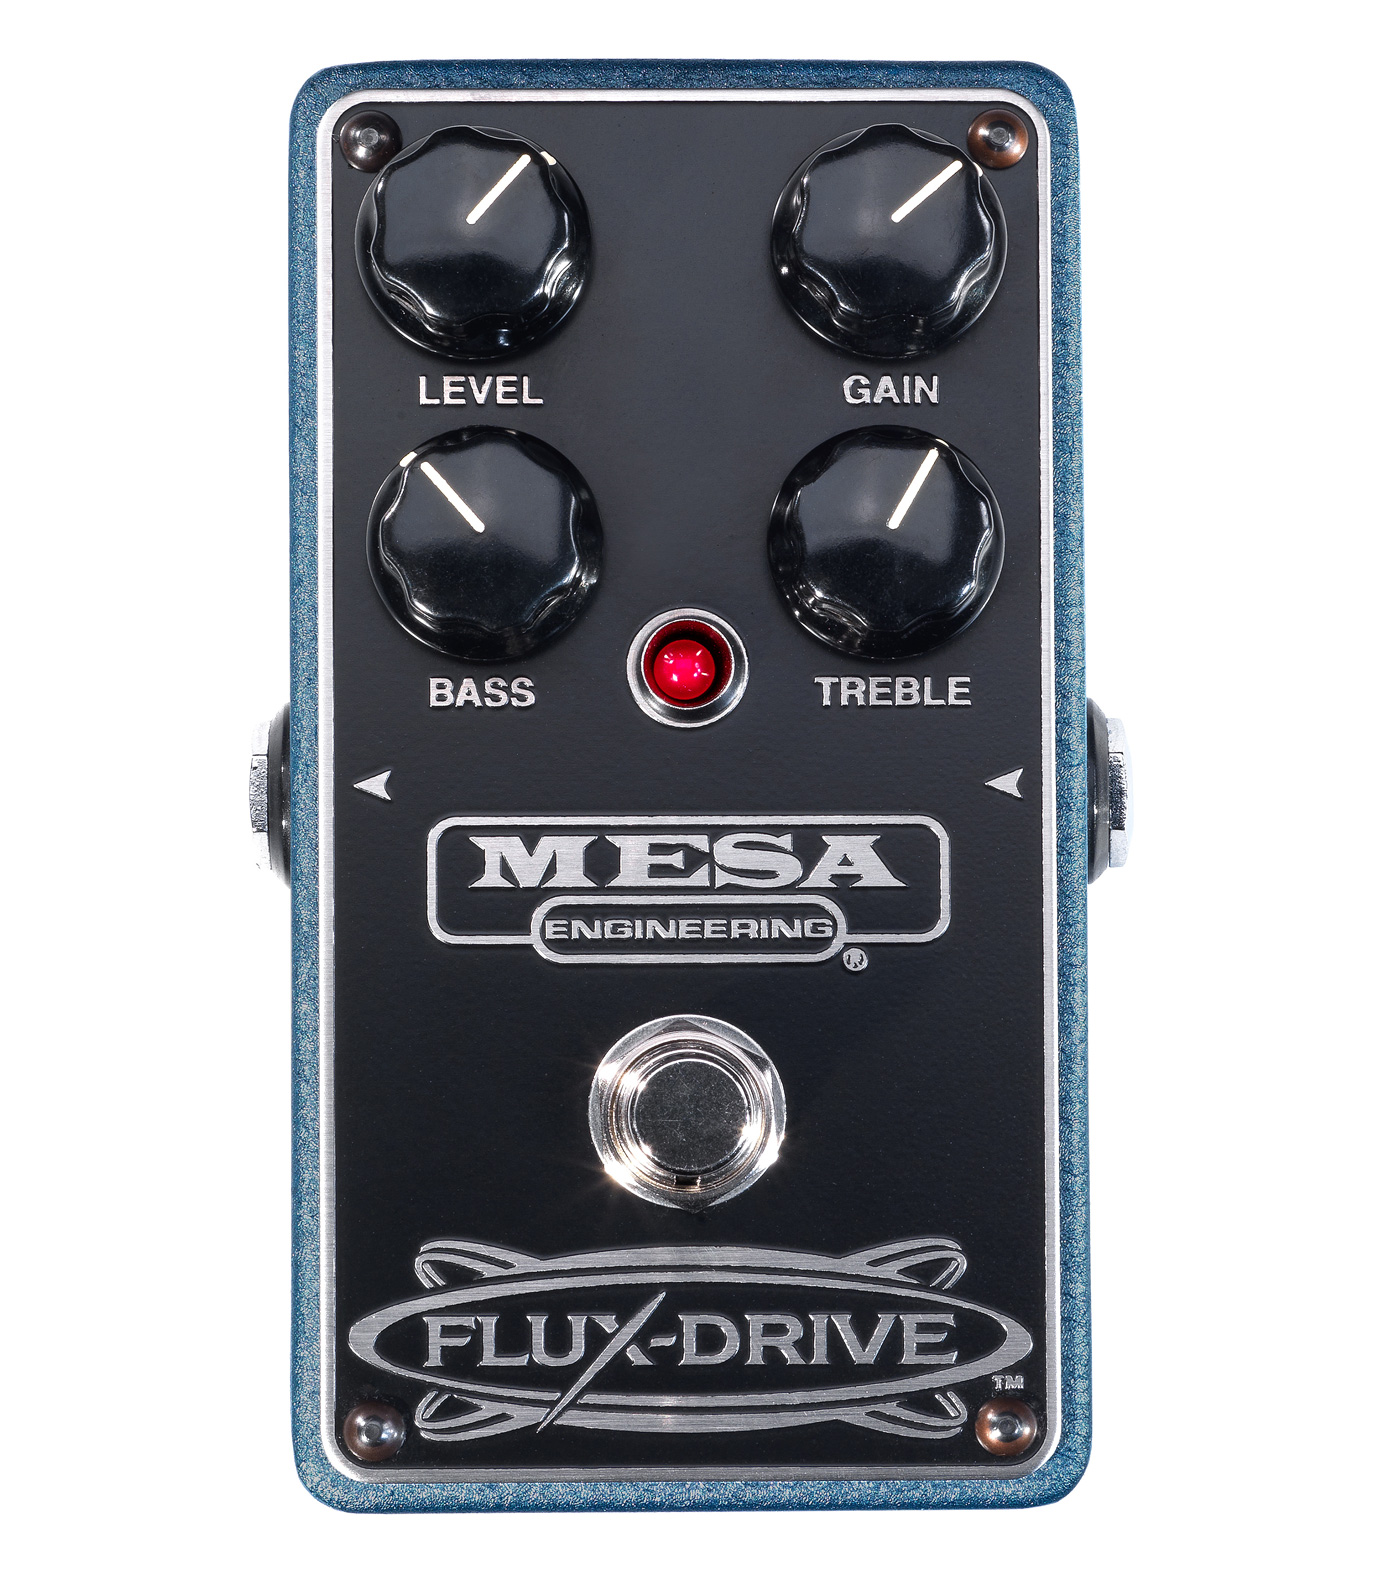 Buy mesaboogie Flux Drive Overdrive Pedal Melody House